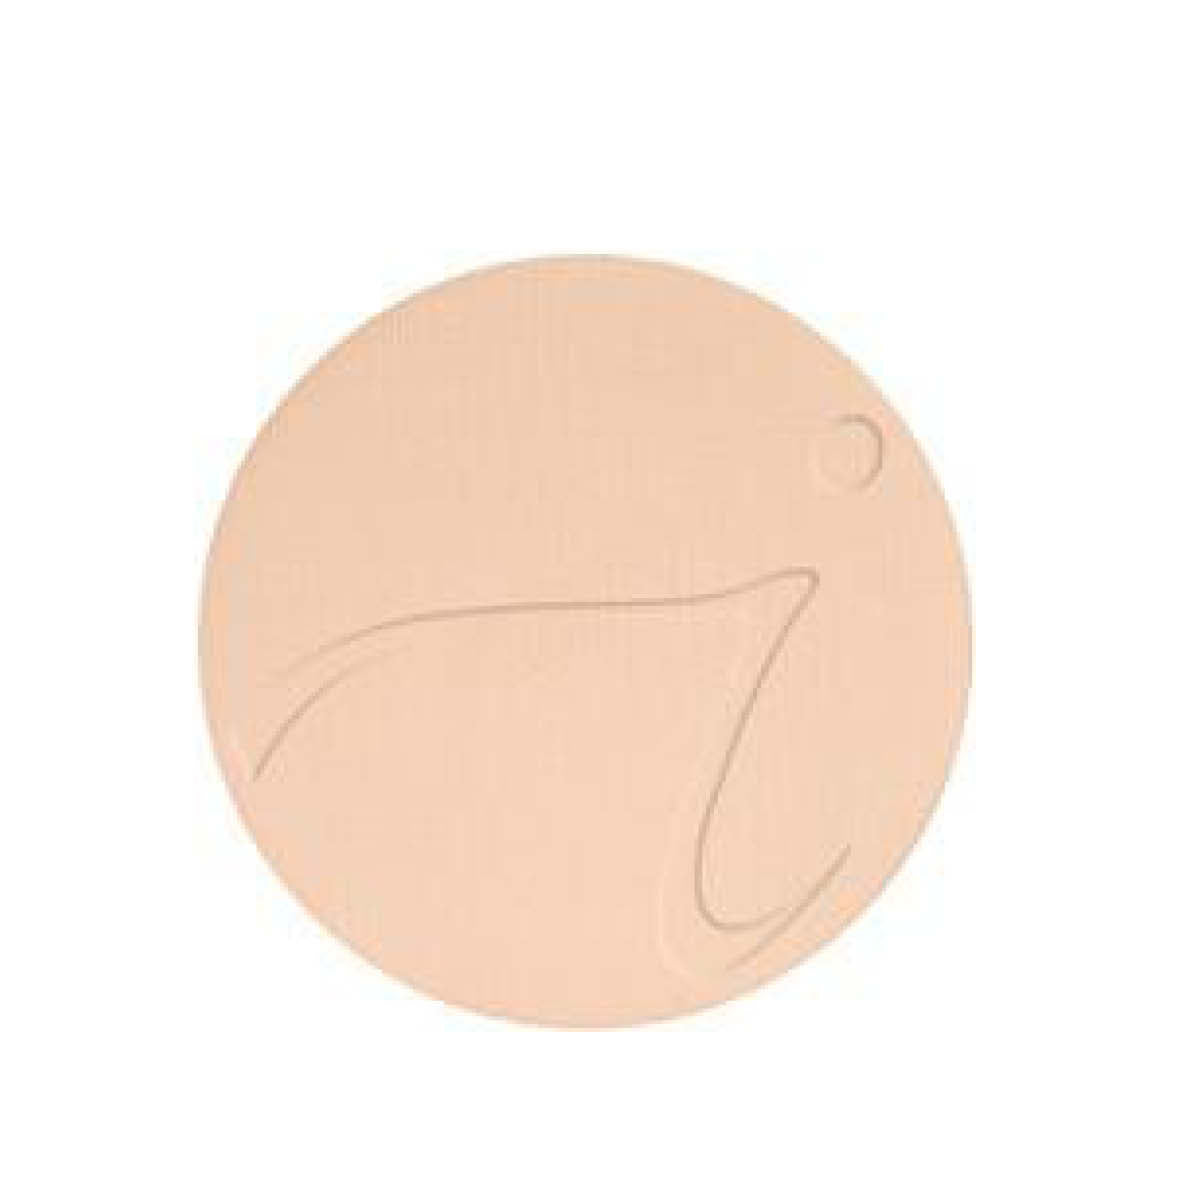 Jane Iredale Pure Pressed Powder Refill Radiant